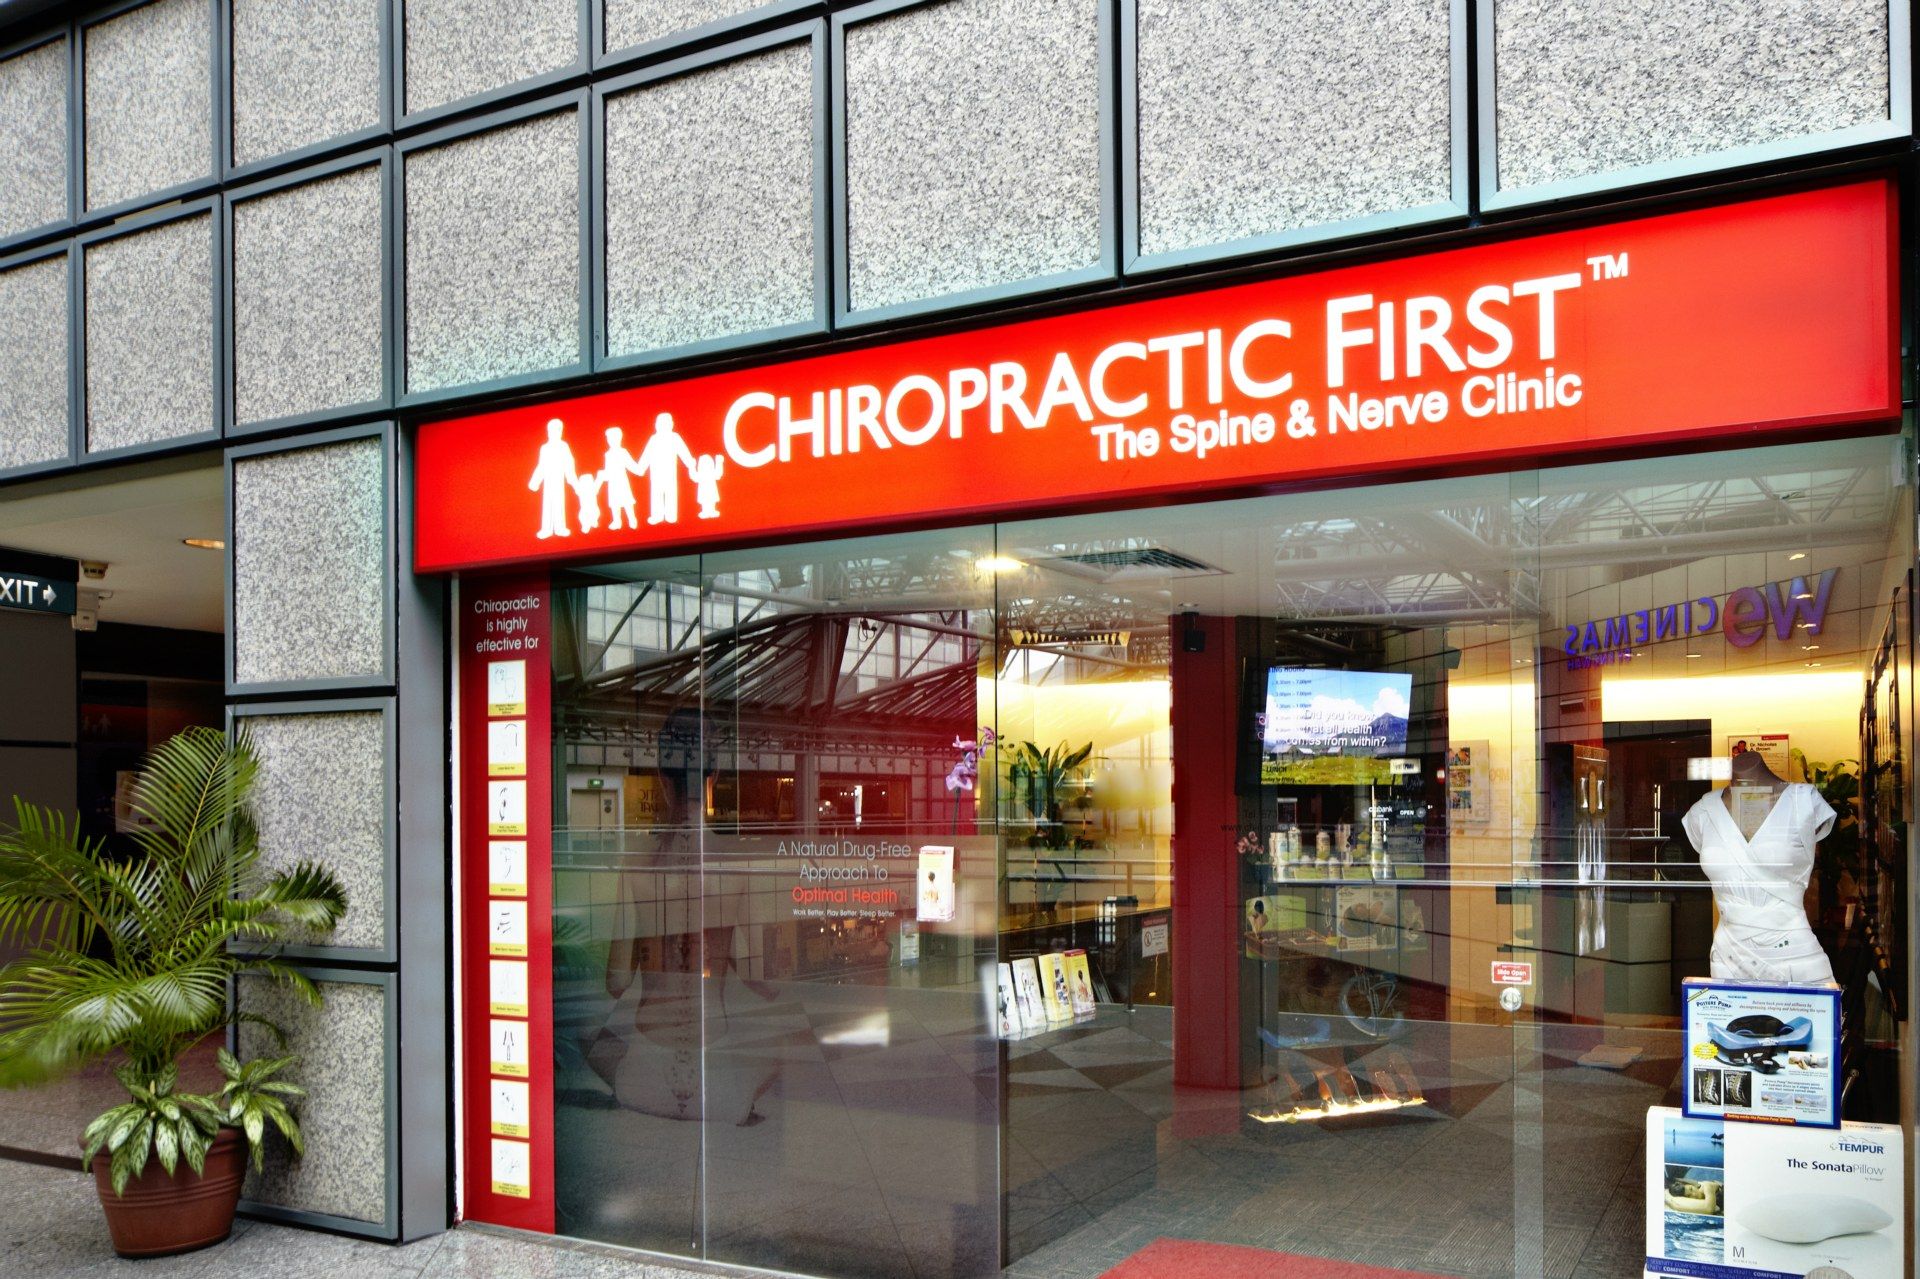 Chiropractic First Group